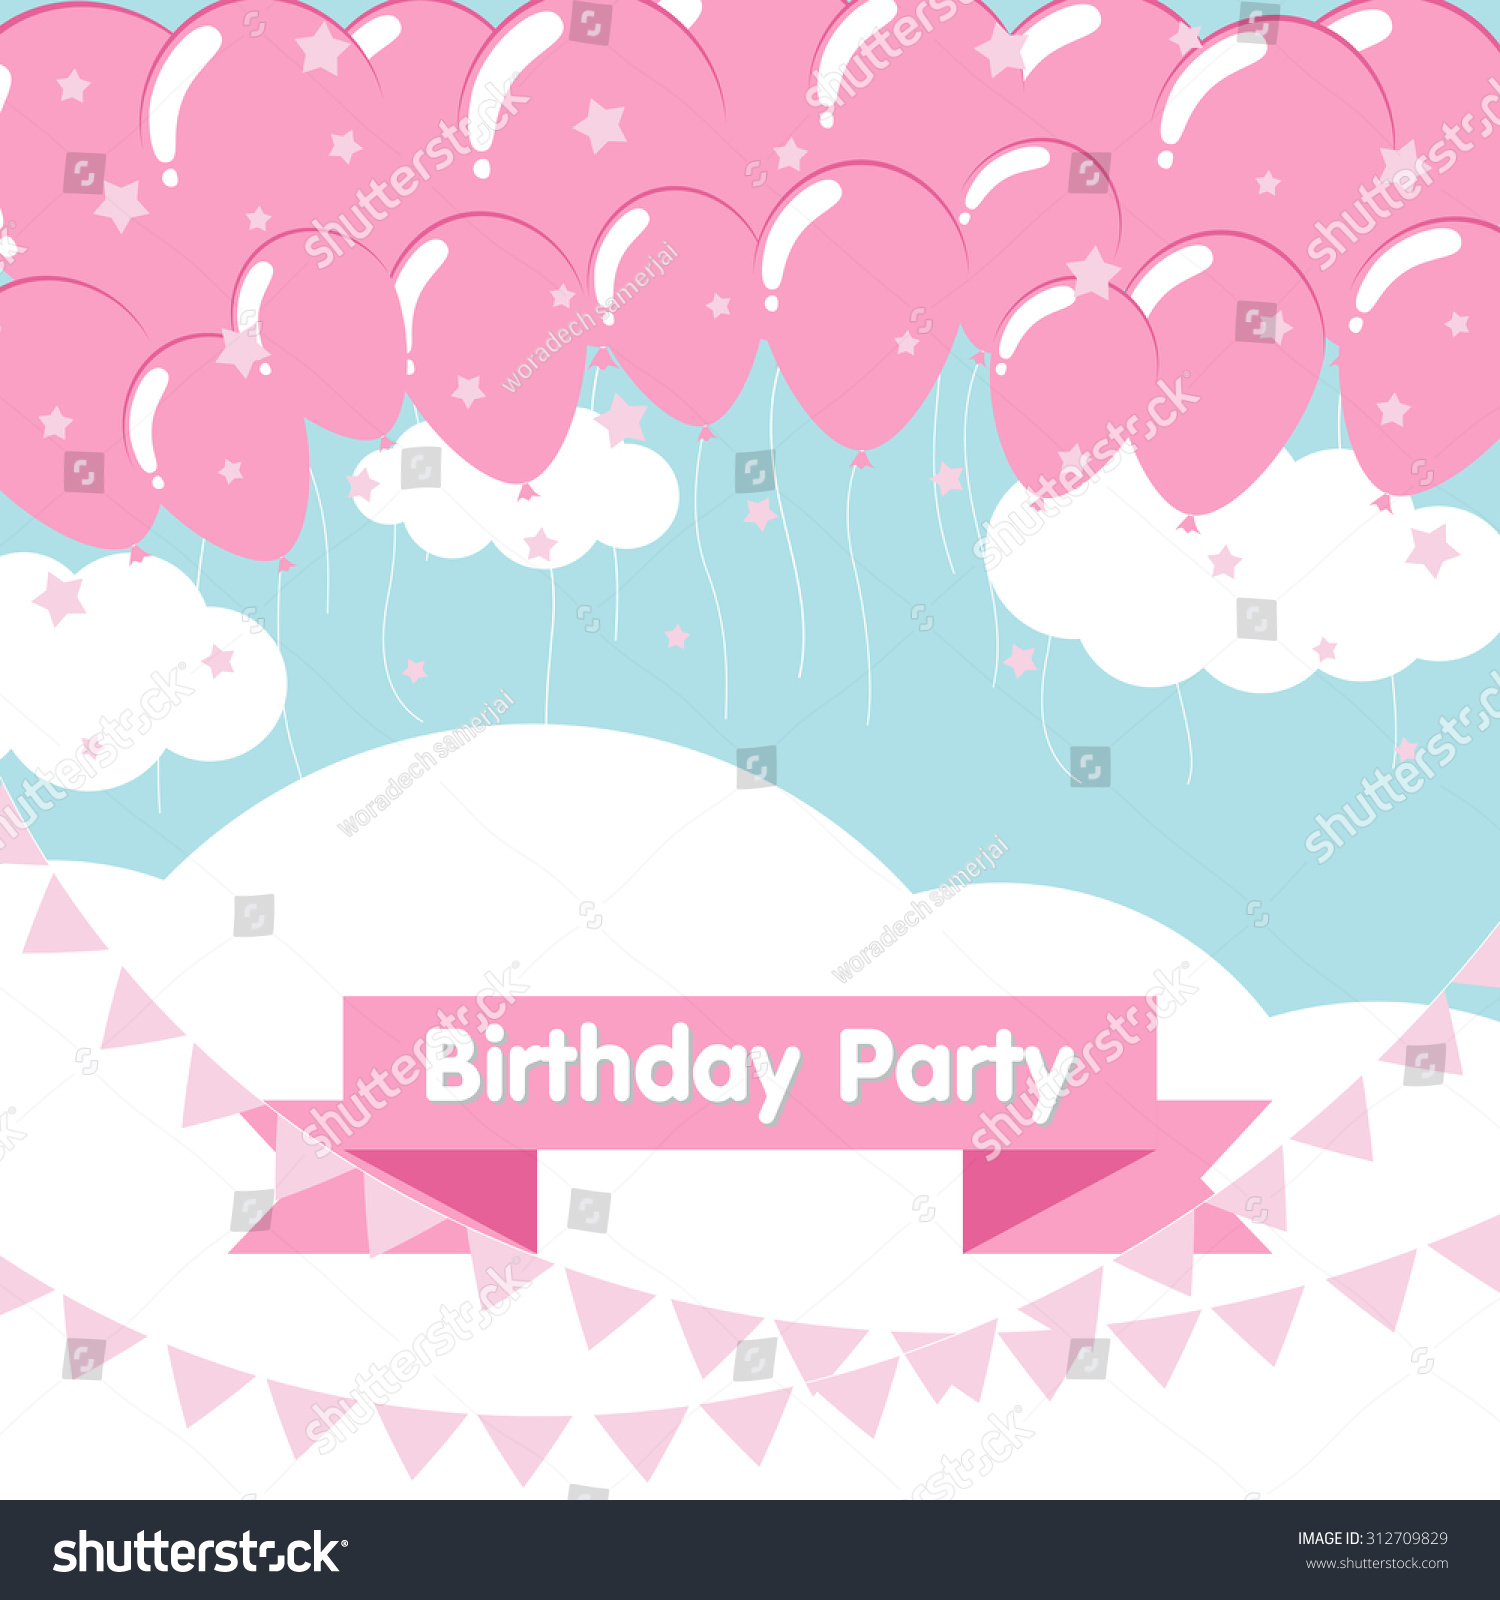 Birthday Background With Light Pink Balloons Flat Design Style